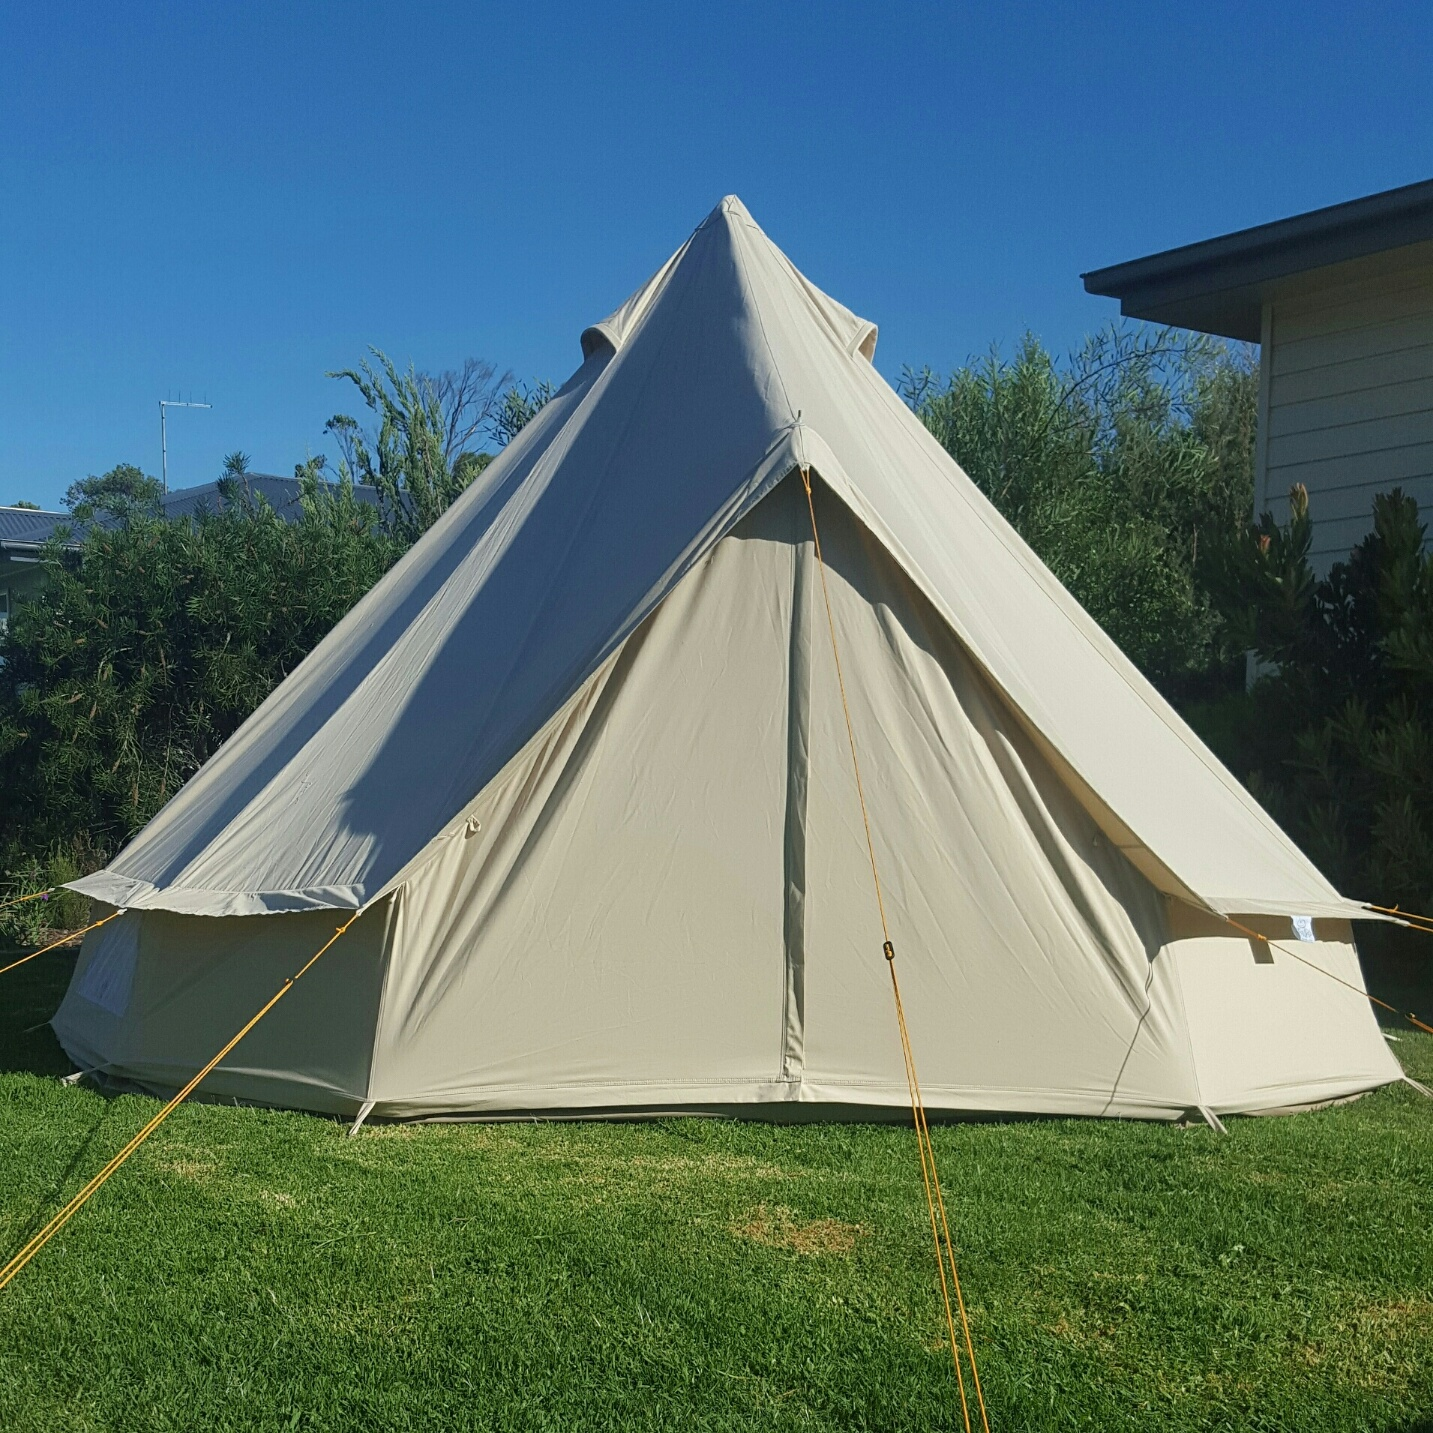 SoulPad 4m Hybrid-G Tent & Our Tents u2013 Prom Coast Eco Glamping